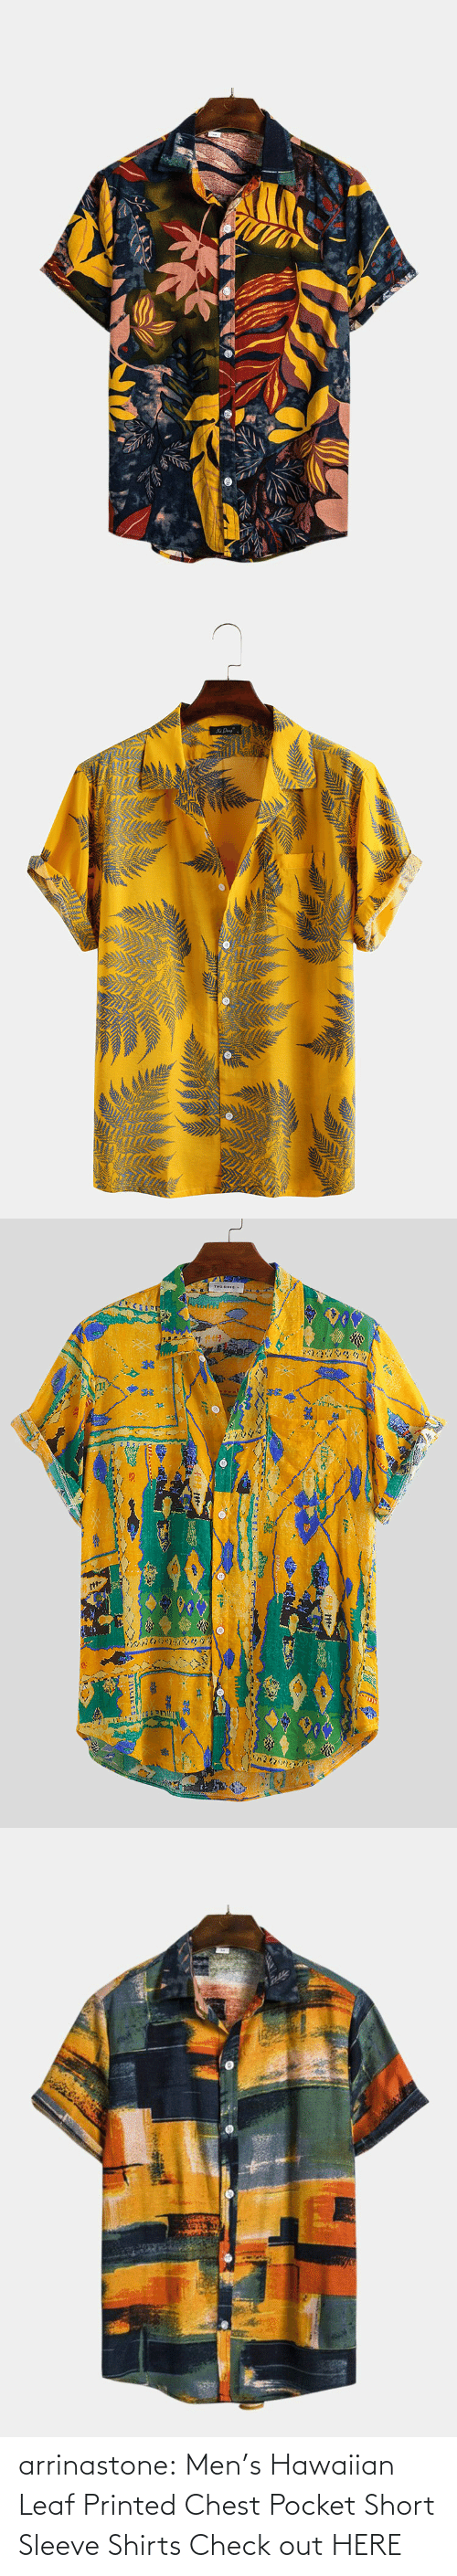 Bit: arrinastone: Men's Hawaiian Leaf Printed Chest Pocket Short Sleeve Shirts  Check out HERE